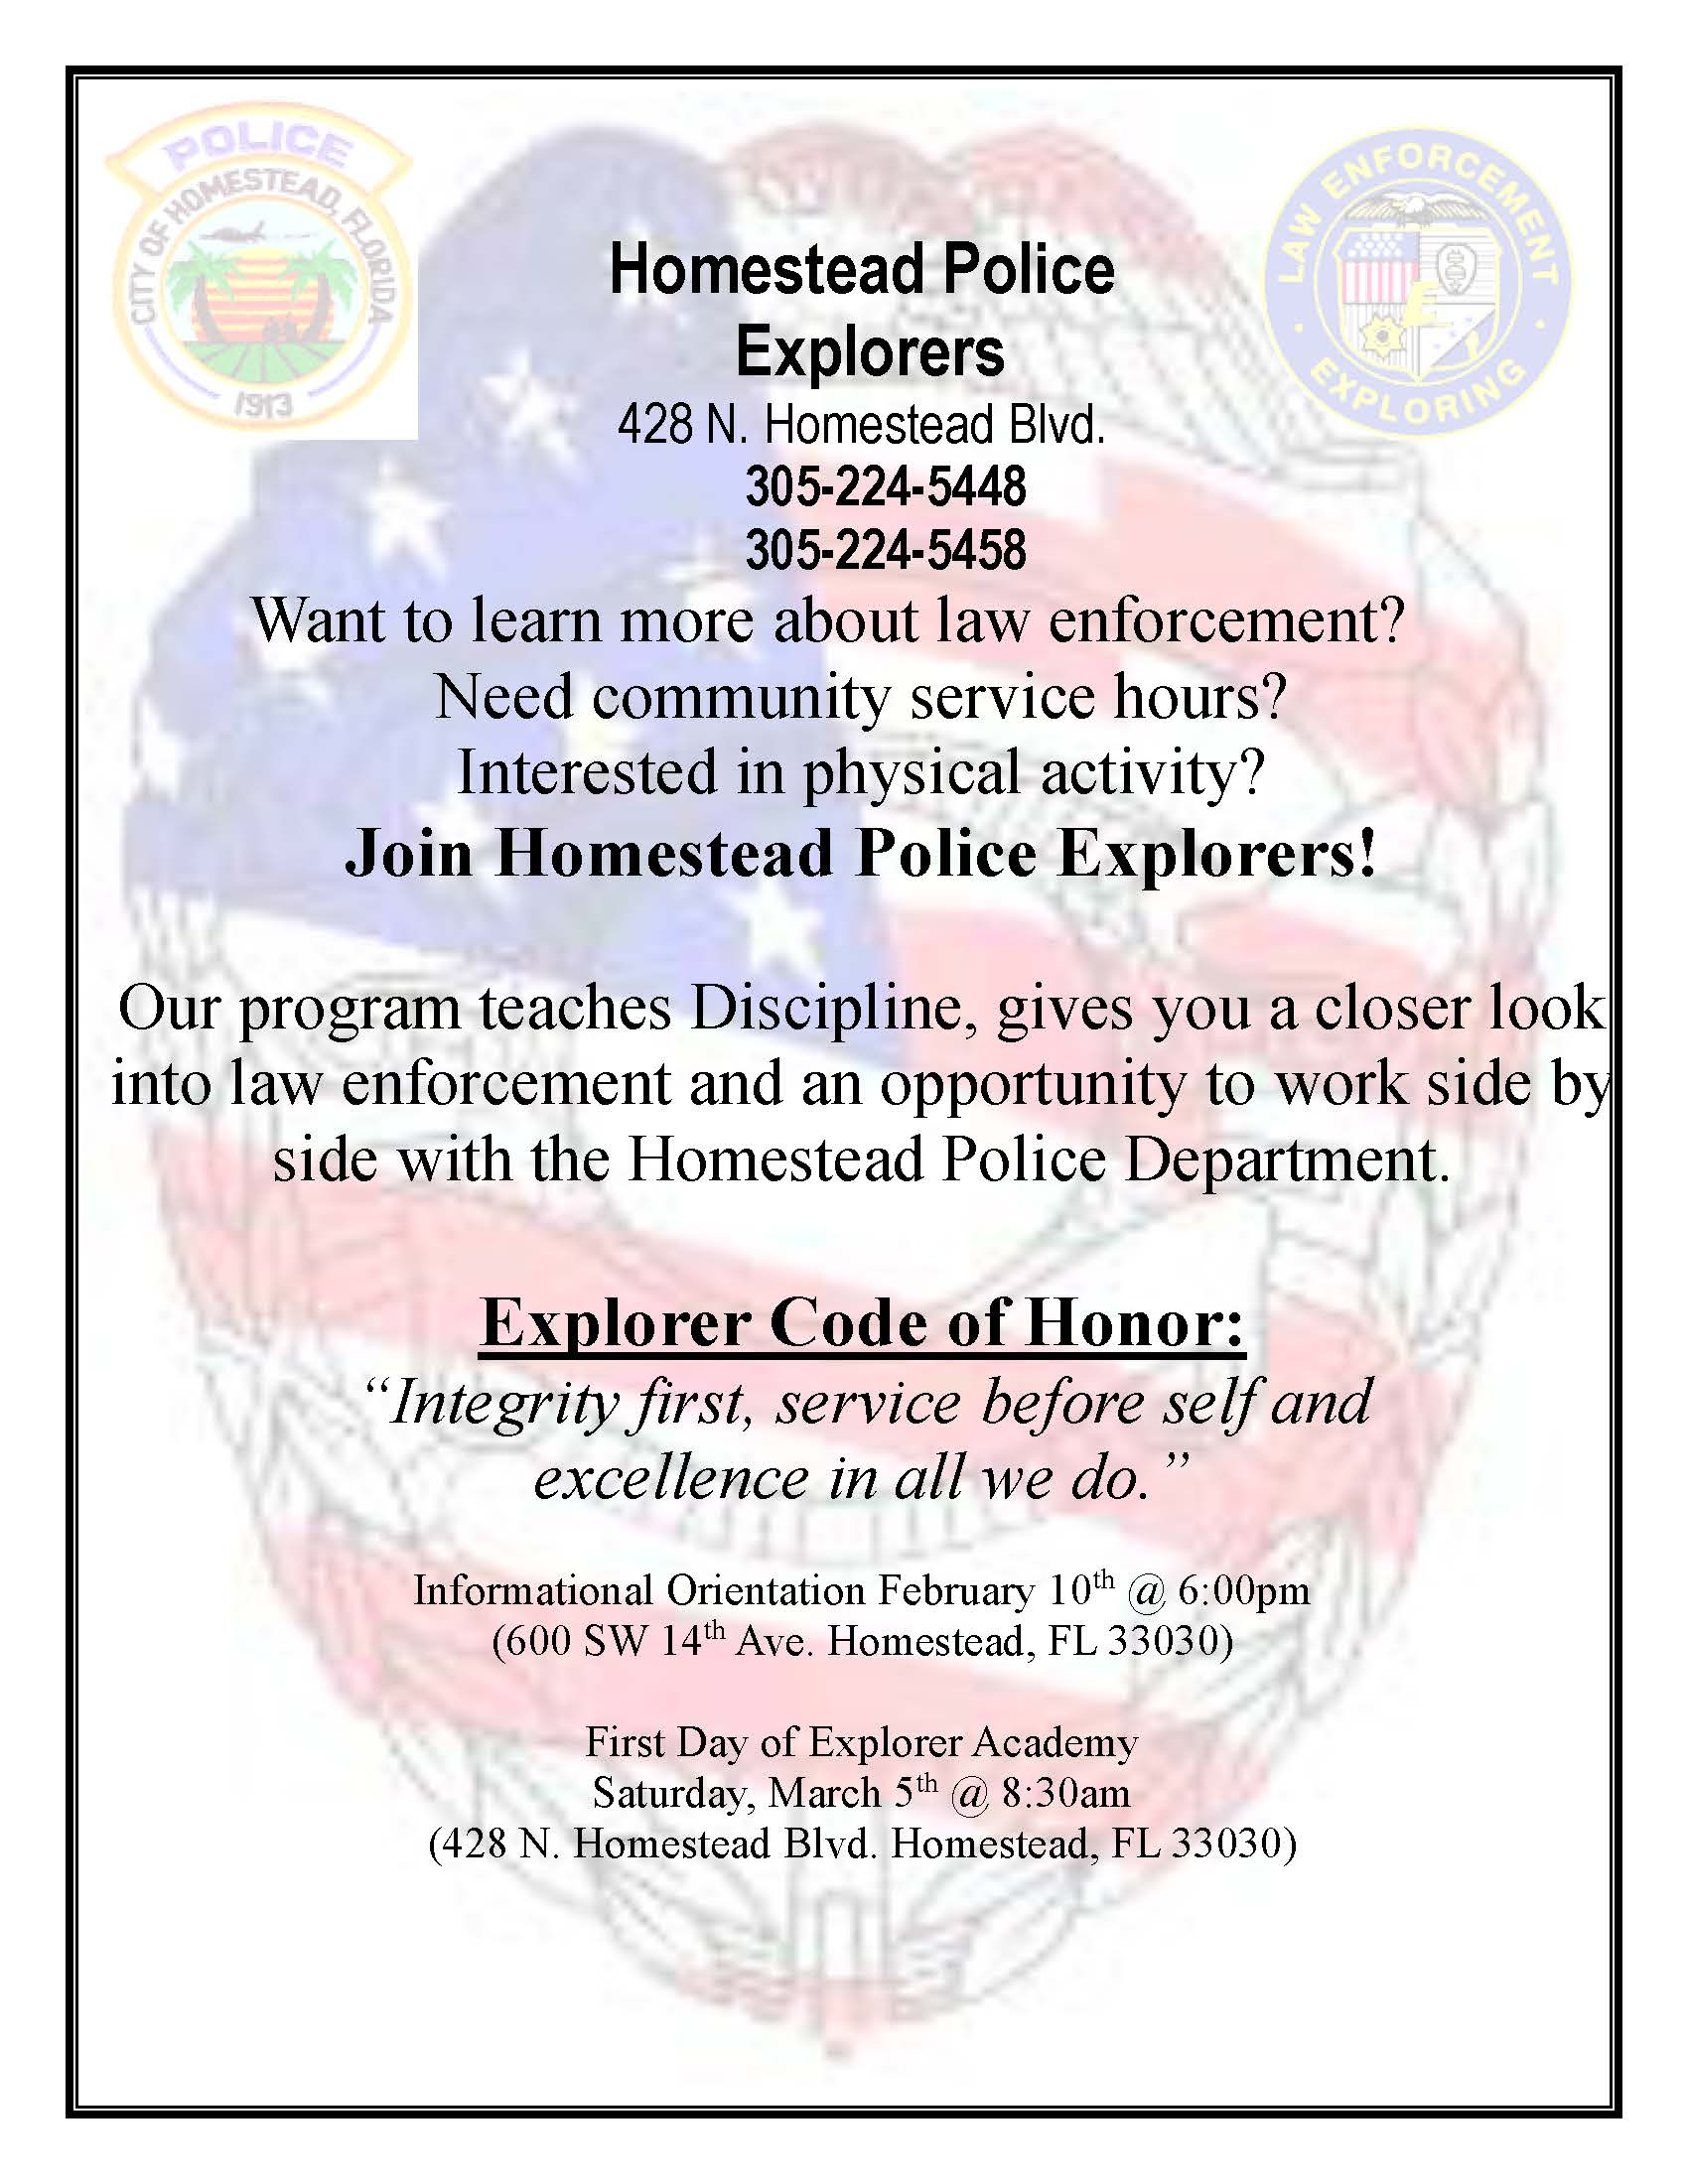 Homestead Police Explorers Recruitment